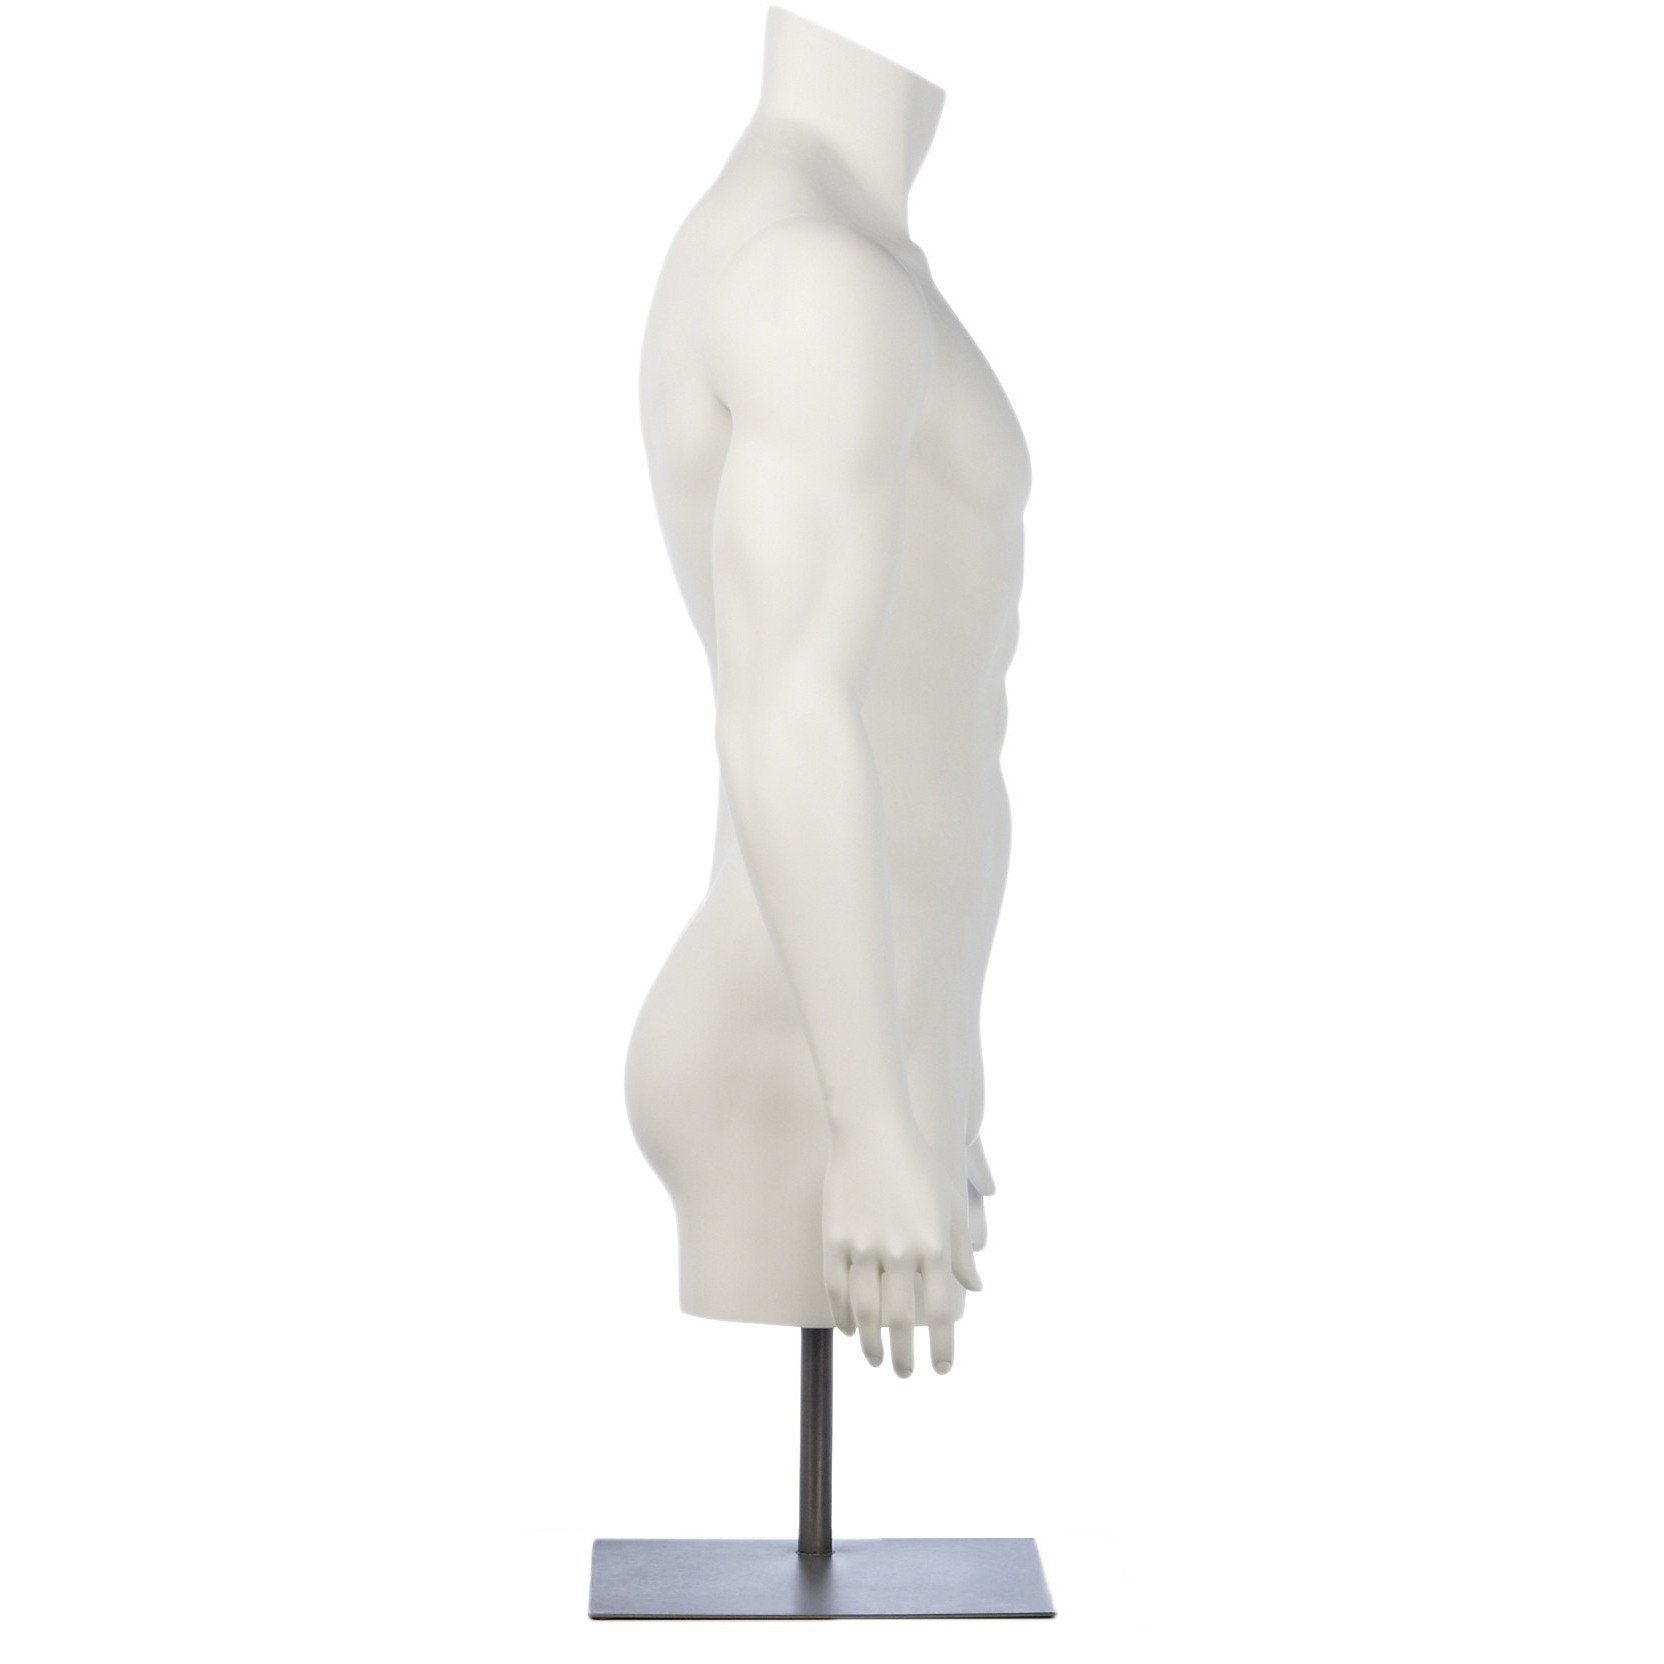 Athletic Male 3/4 Form Mannequin by Fusion Specialties Side